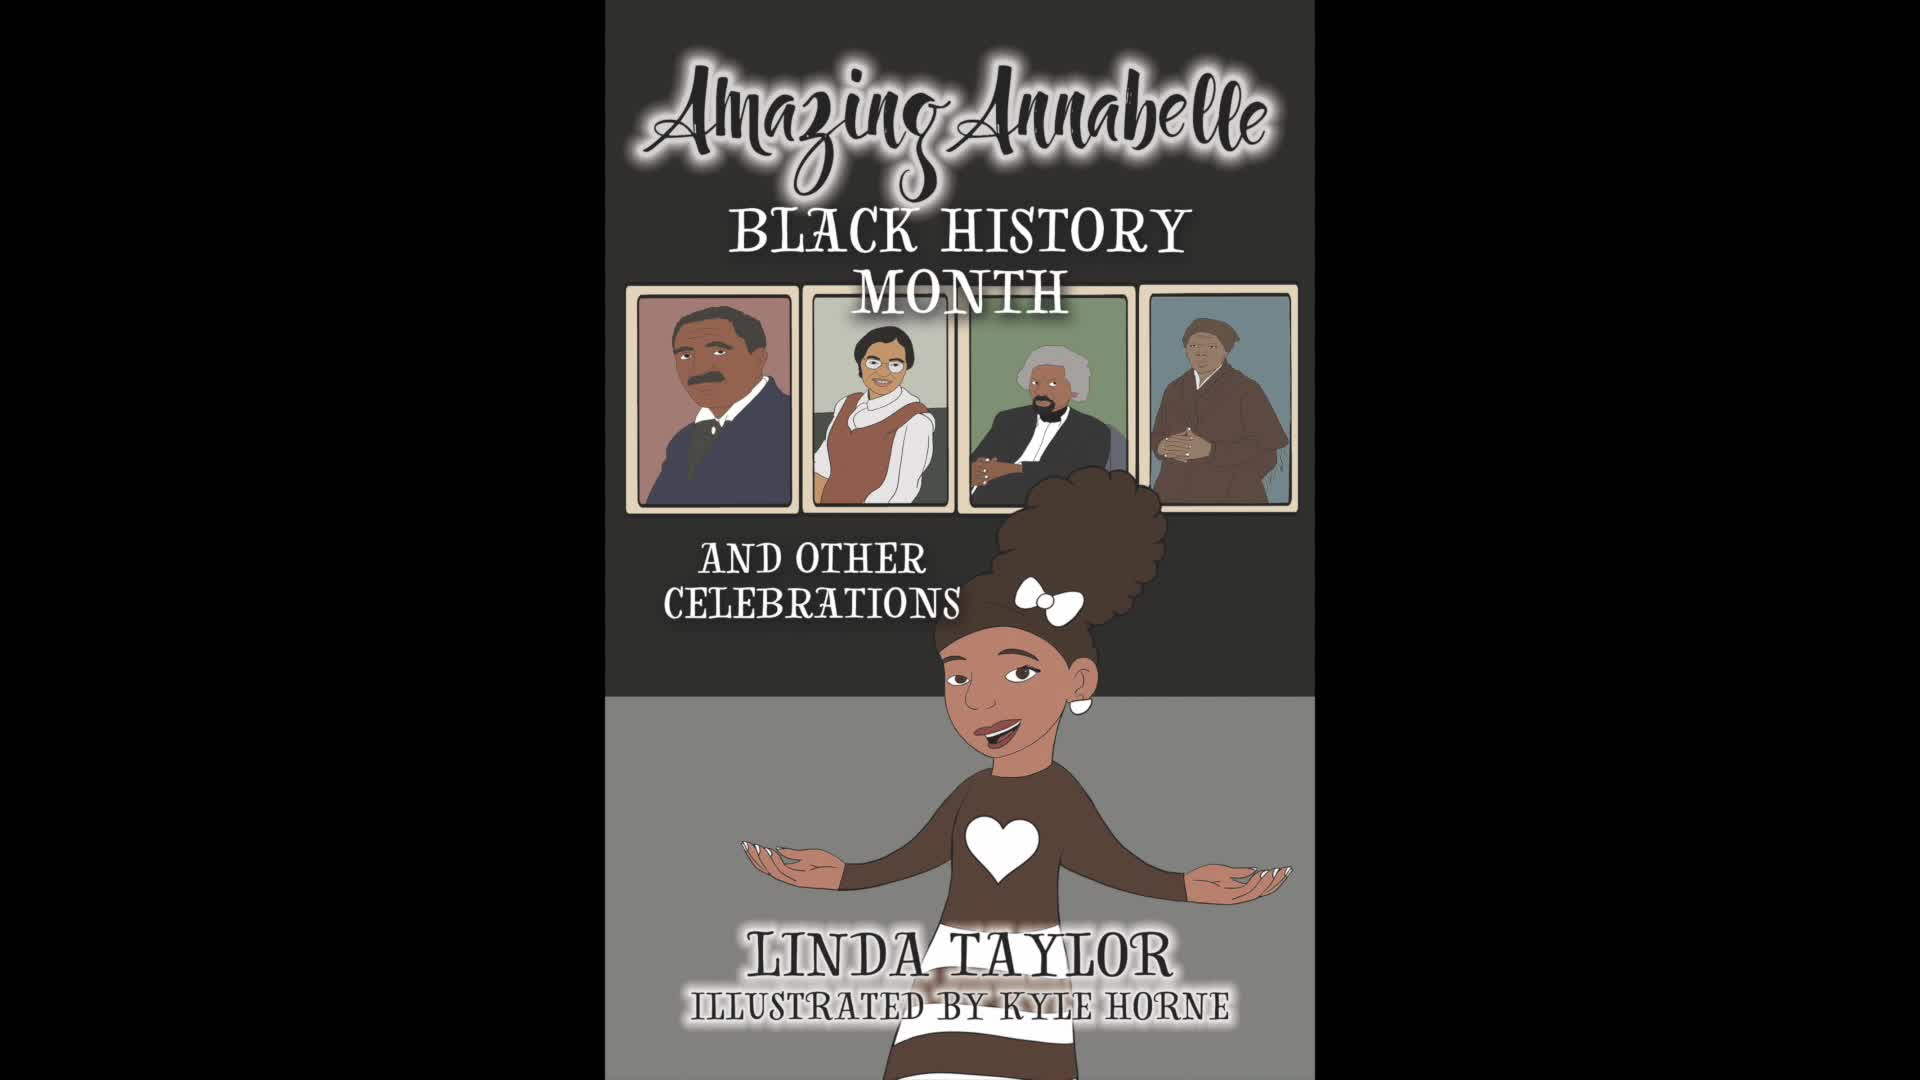 Amazing Annabelle Black History Month Chapter 5